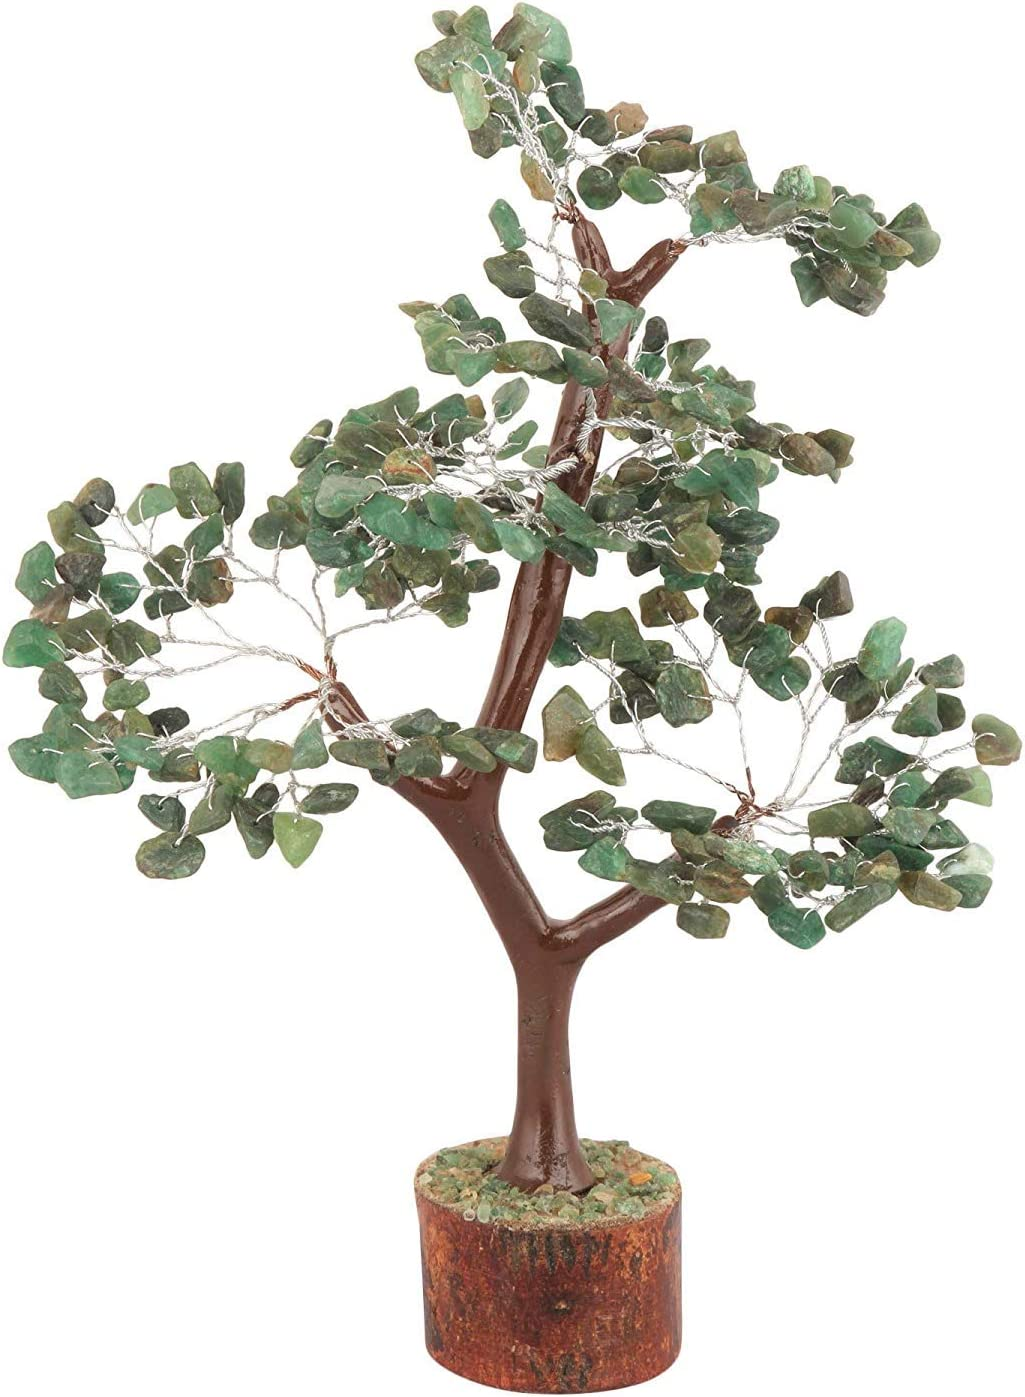 ZAICUS Gemstone Money Tree Feng Shui Bonsai for Reiki Healing Stone Chakra Balancing Aura Cleansing Good Luck Energy Generator Spiritual Gift Home Office Table Decor (Green Aventurine Silver Wire)